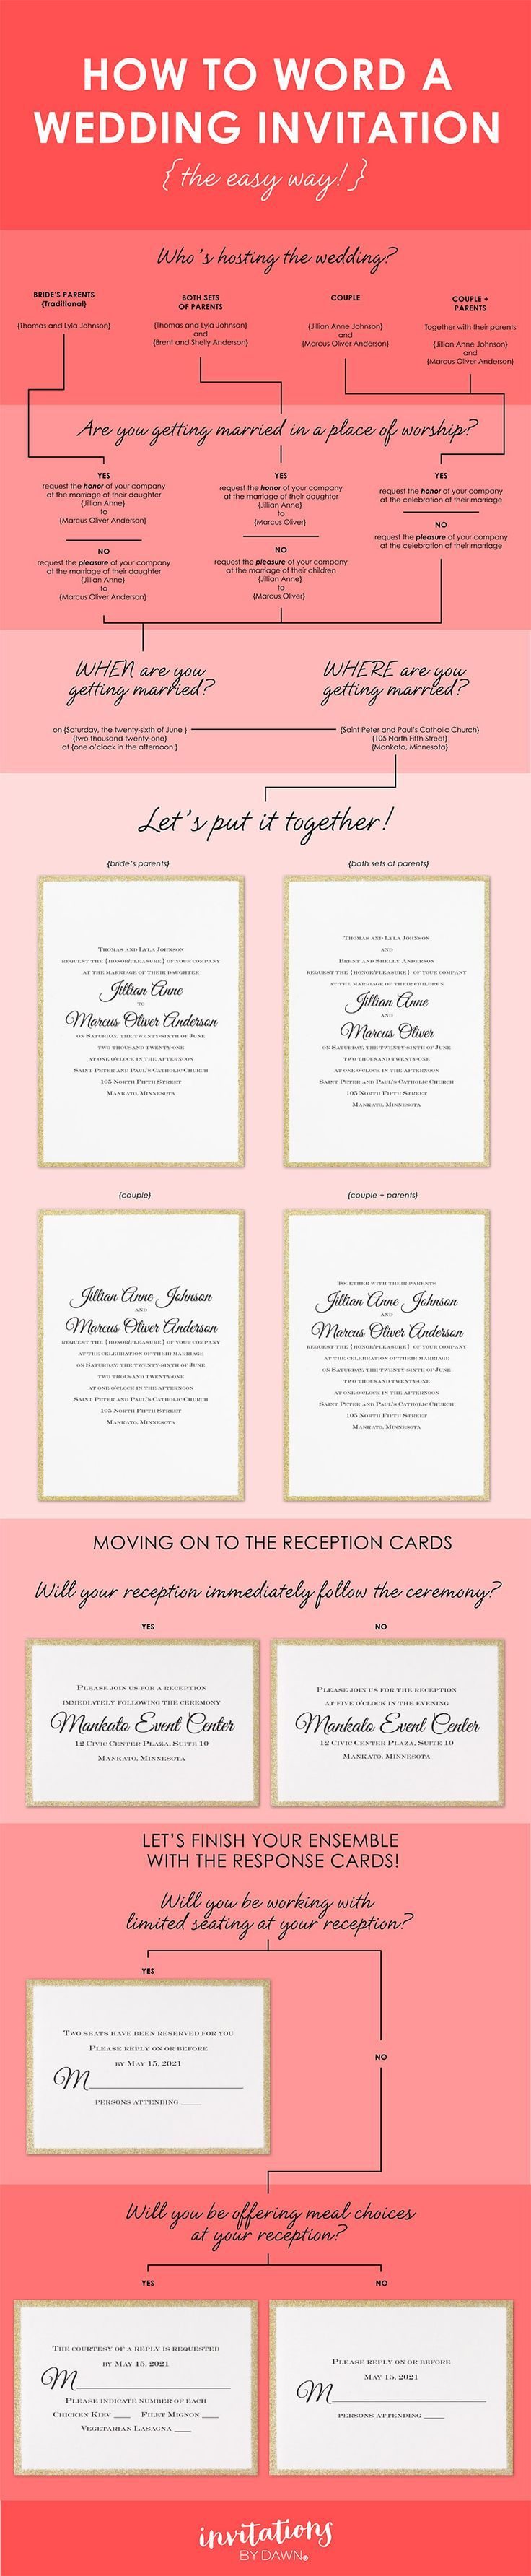 9017a9dfd9738ec80fe7c1bb112503bb you've probably thought about how you're going to word your,Wedding Invitation Help